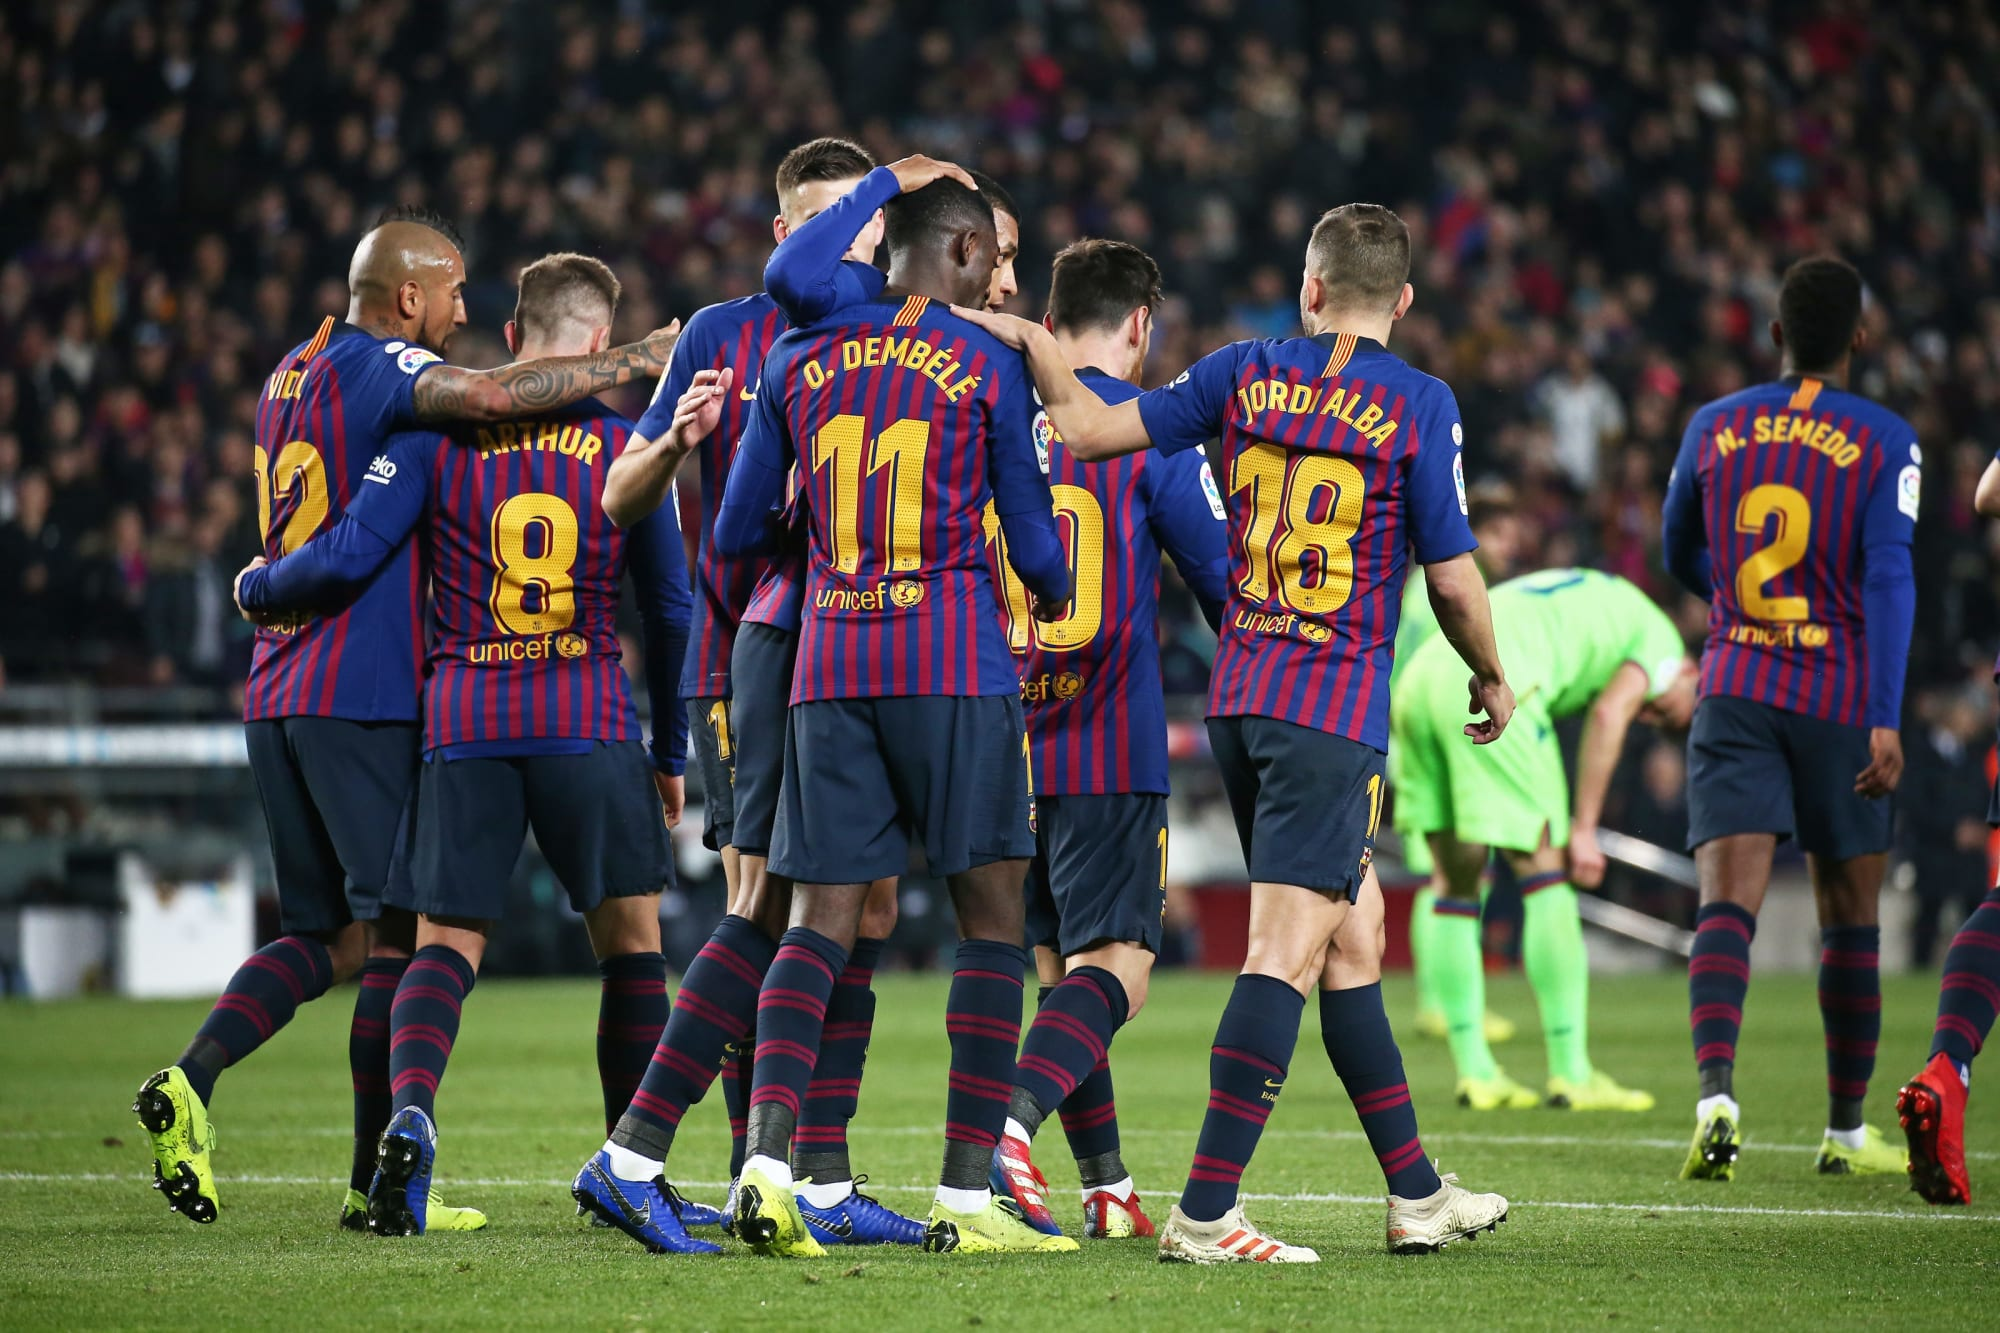 Barcelona vs Levante: Expected Starting XI for potential